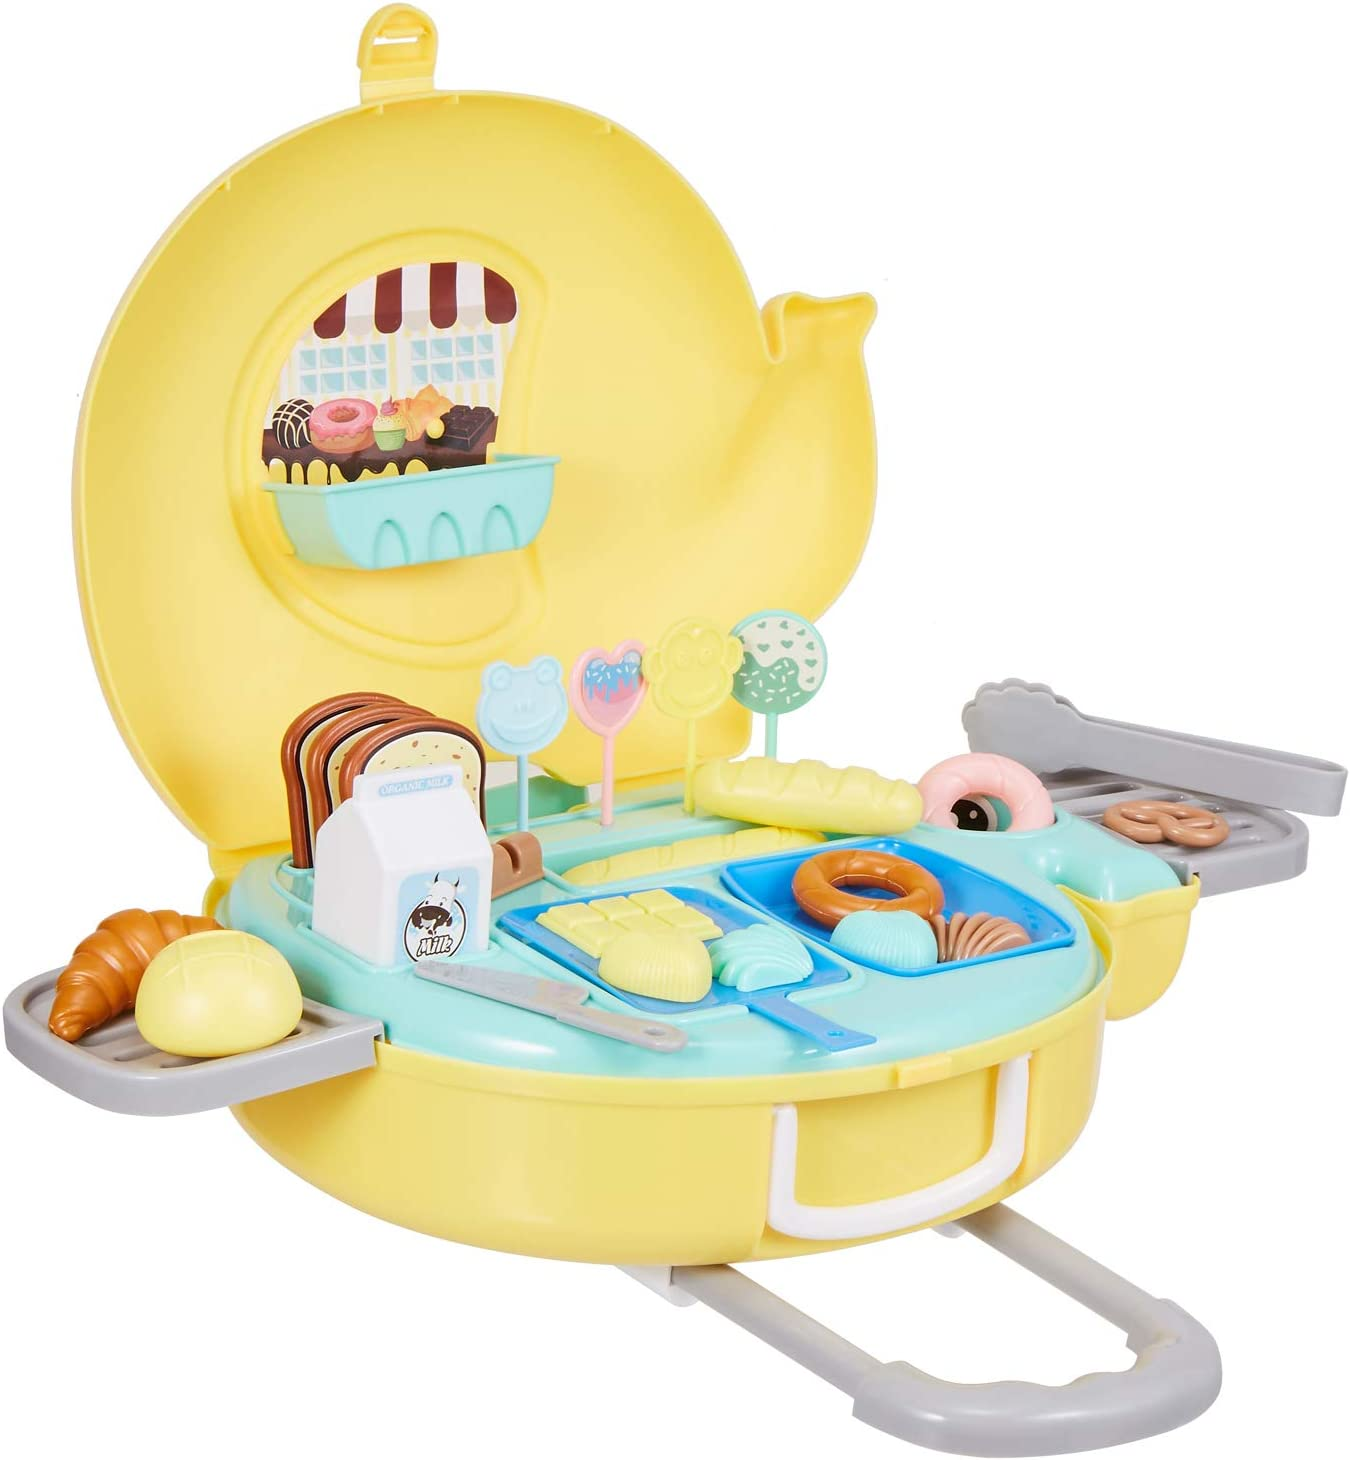 N\ A Kitchen Toy Set - Pretend to be a Kitchen Toy, Children's Cooking Toys are Suitable for Toddler Food and Cutting Toy Sets, The Best Gift for Boys and Girls who Like to Play with Kitchen Toy Sets